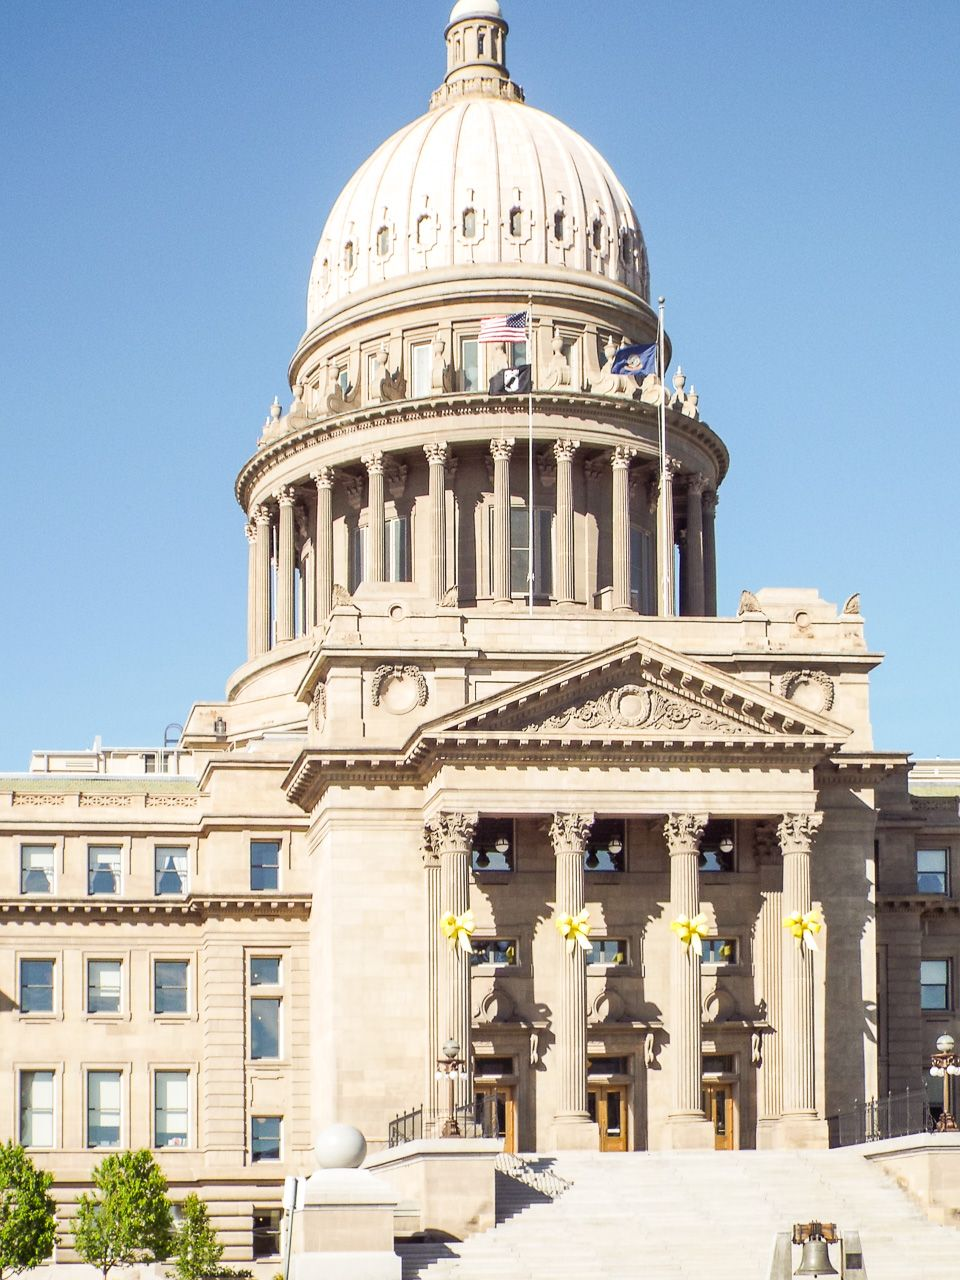 The Idaho State Capital Building In Boise Idaho It Was The Tallest Building In Boise From 1920 To 1975 Currently The 5th Boise Wonderful Places Idaho State